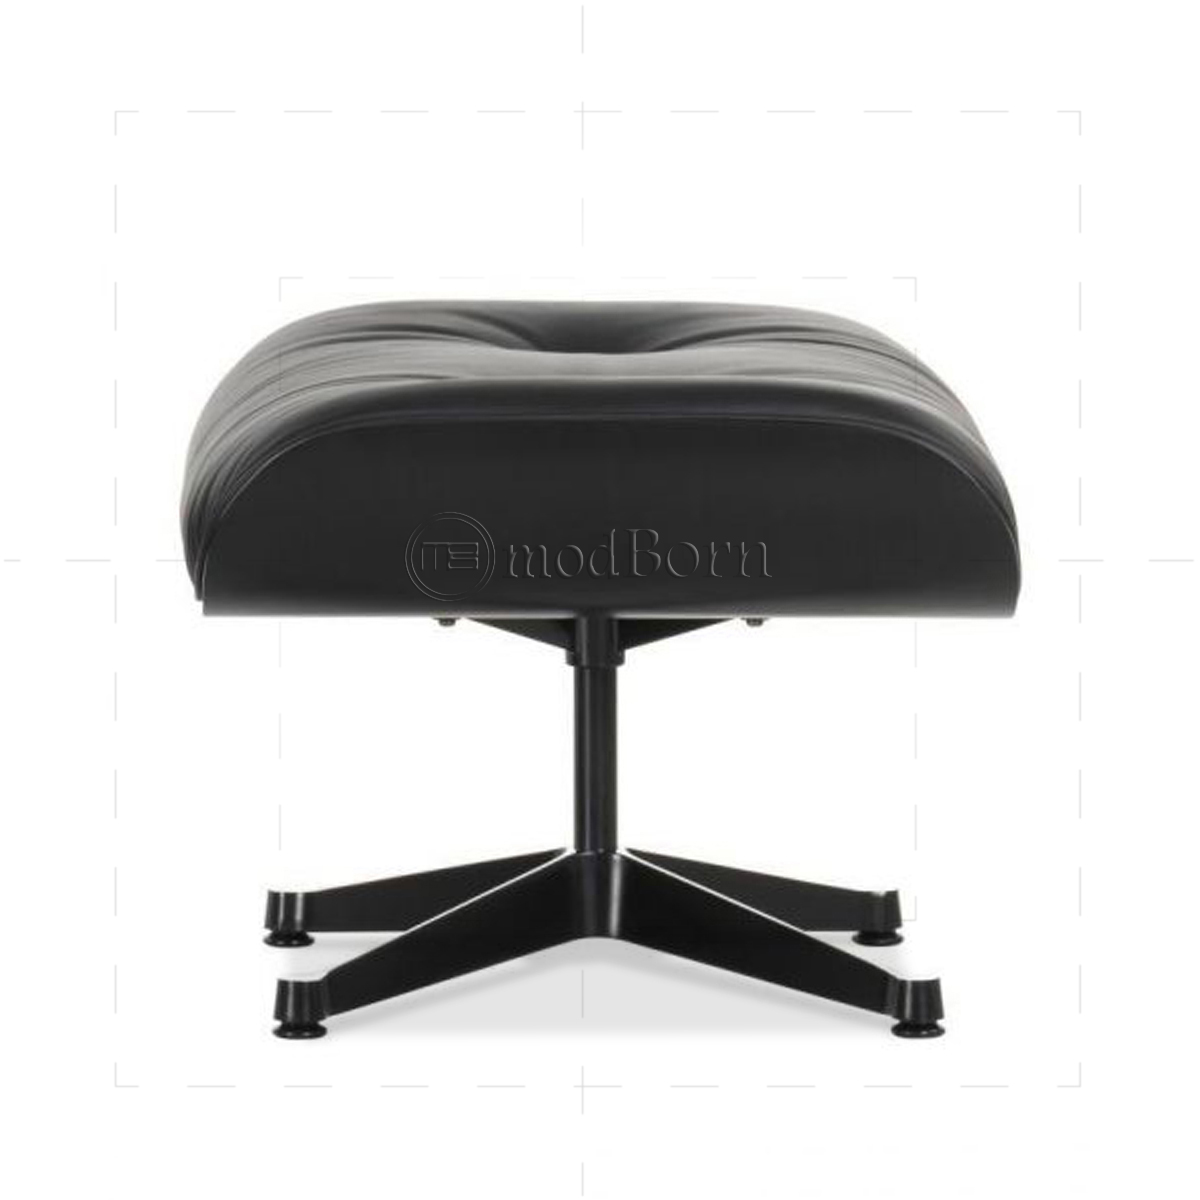 Eames Style Lounge Chair And Ottoman Black Leather Black Wood   Replica